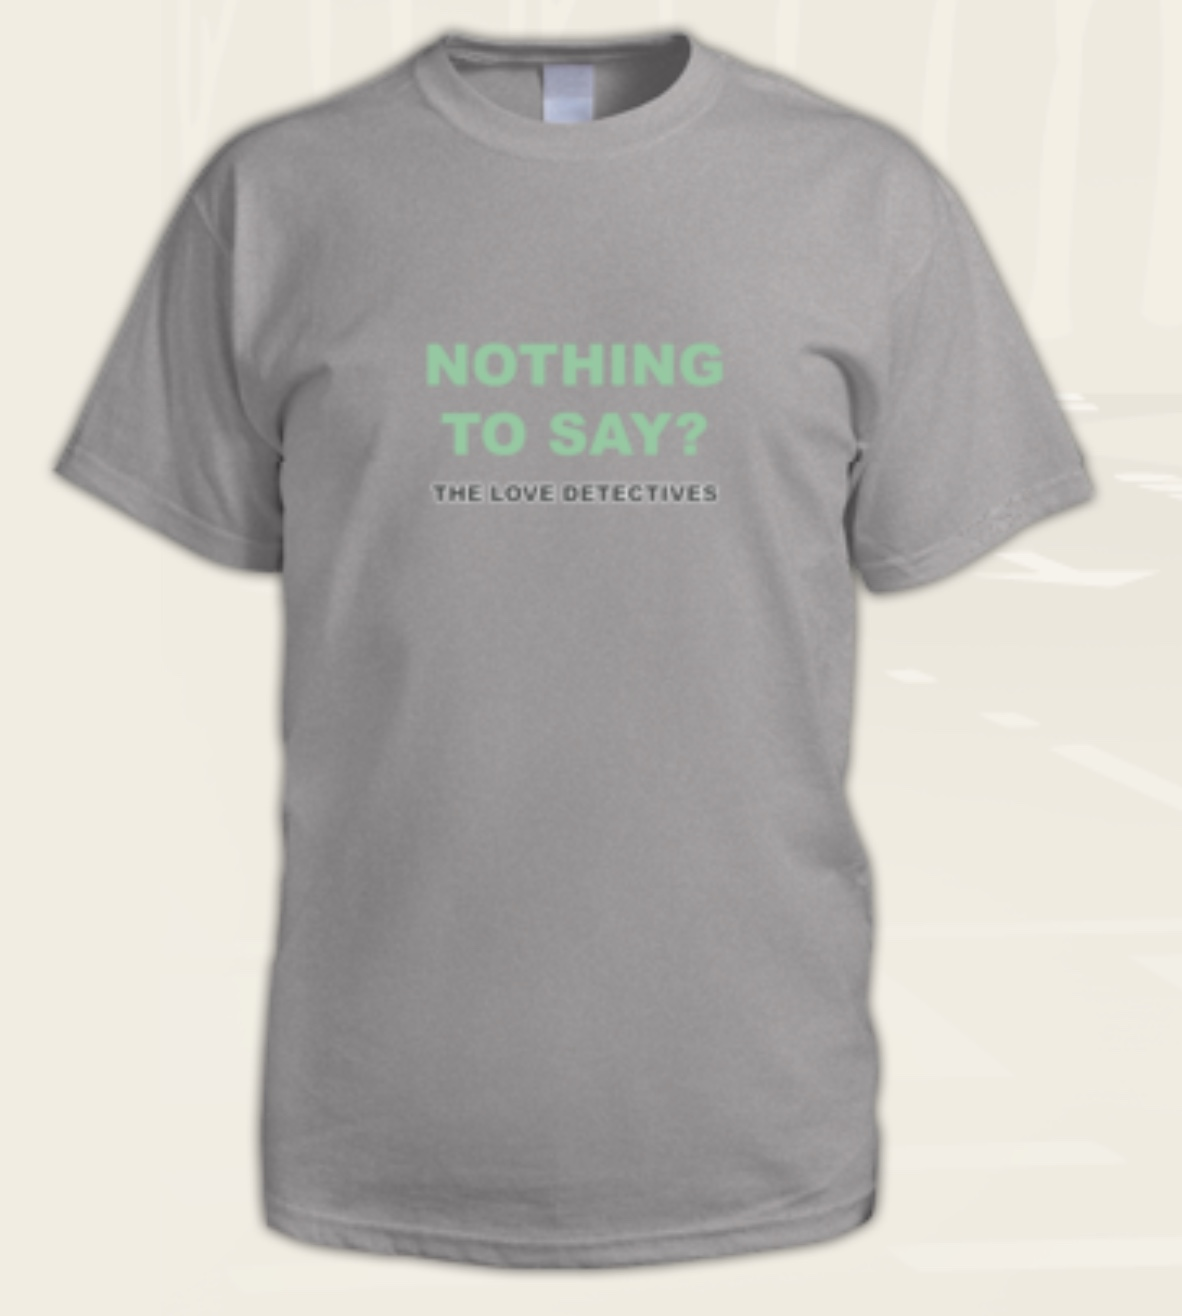 Nothing to Say T shirt.jpeg